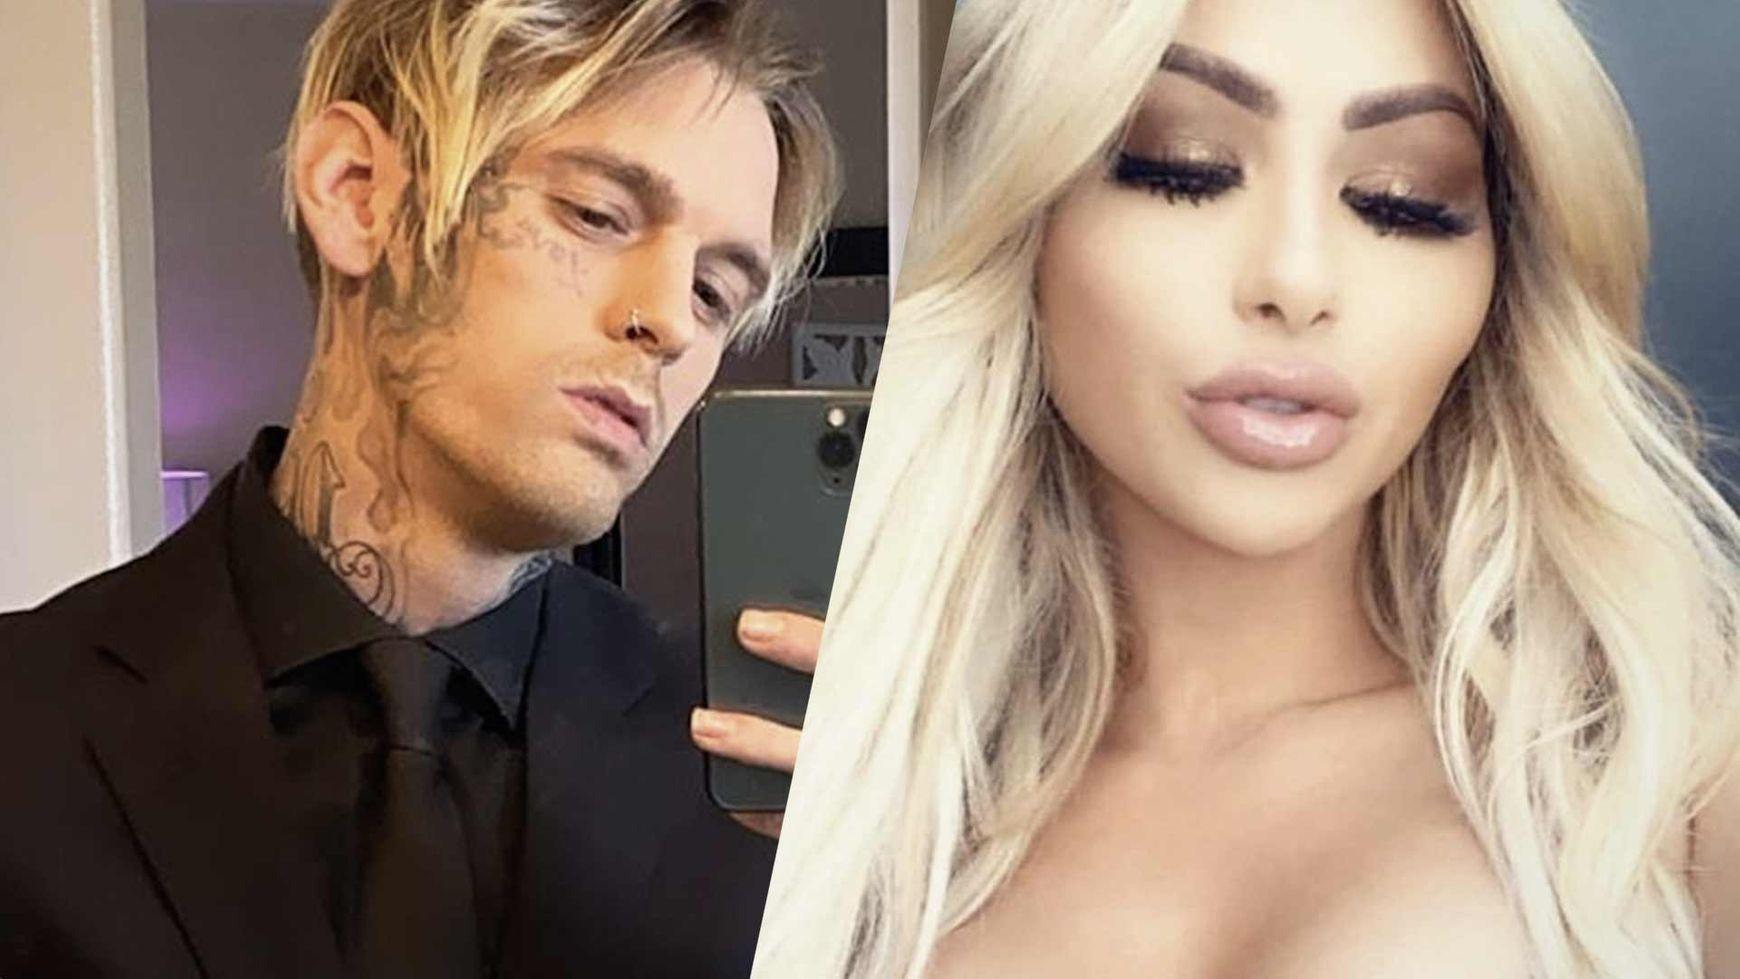 Aaron Carter And Melanie Martin Engaged - See The Ring!